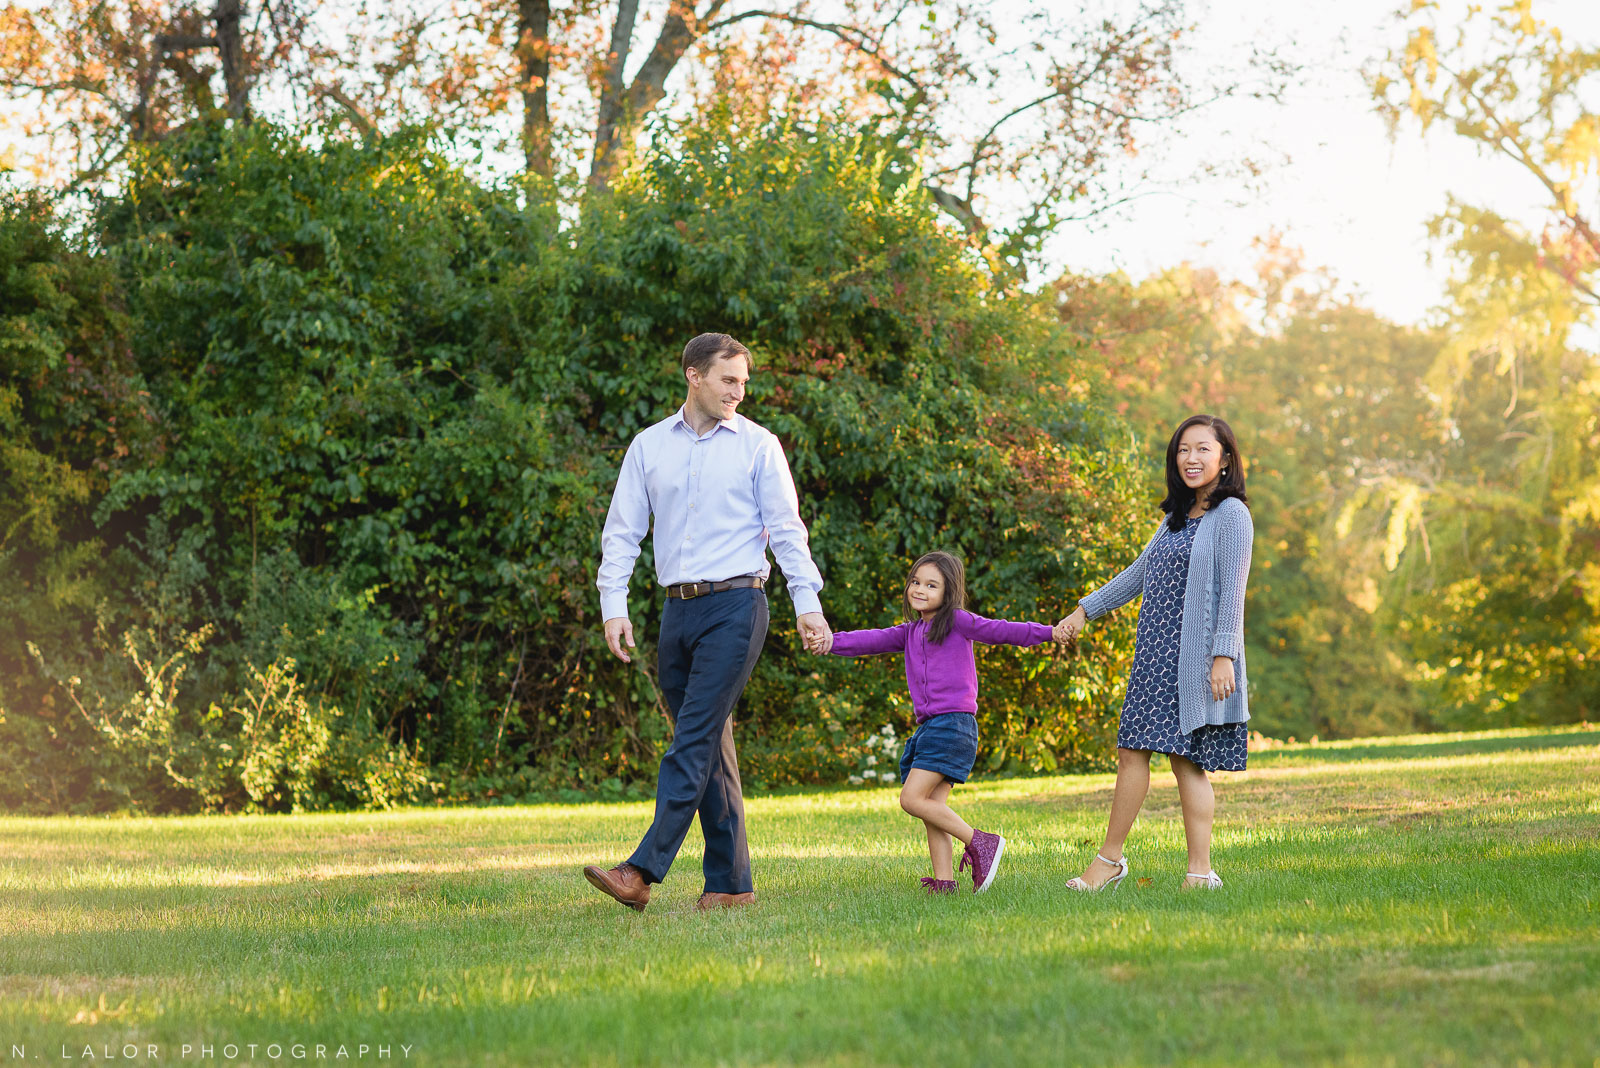 CT family photographer N. Lalor Photography captures families as they really are. Waveny Park, New Canaan, Connecticut.